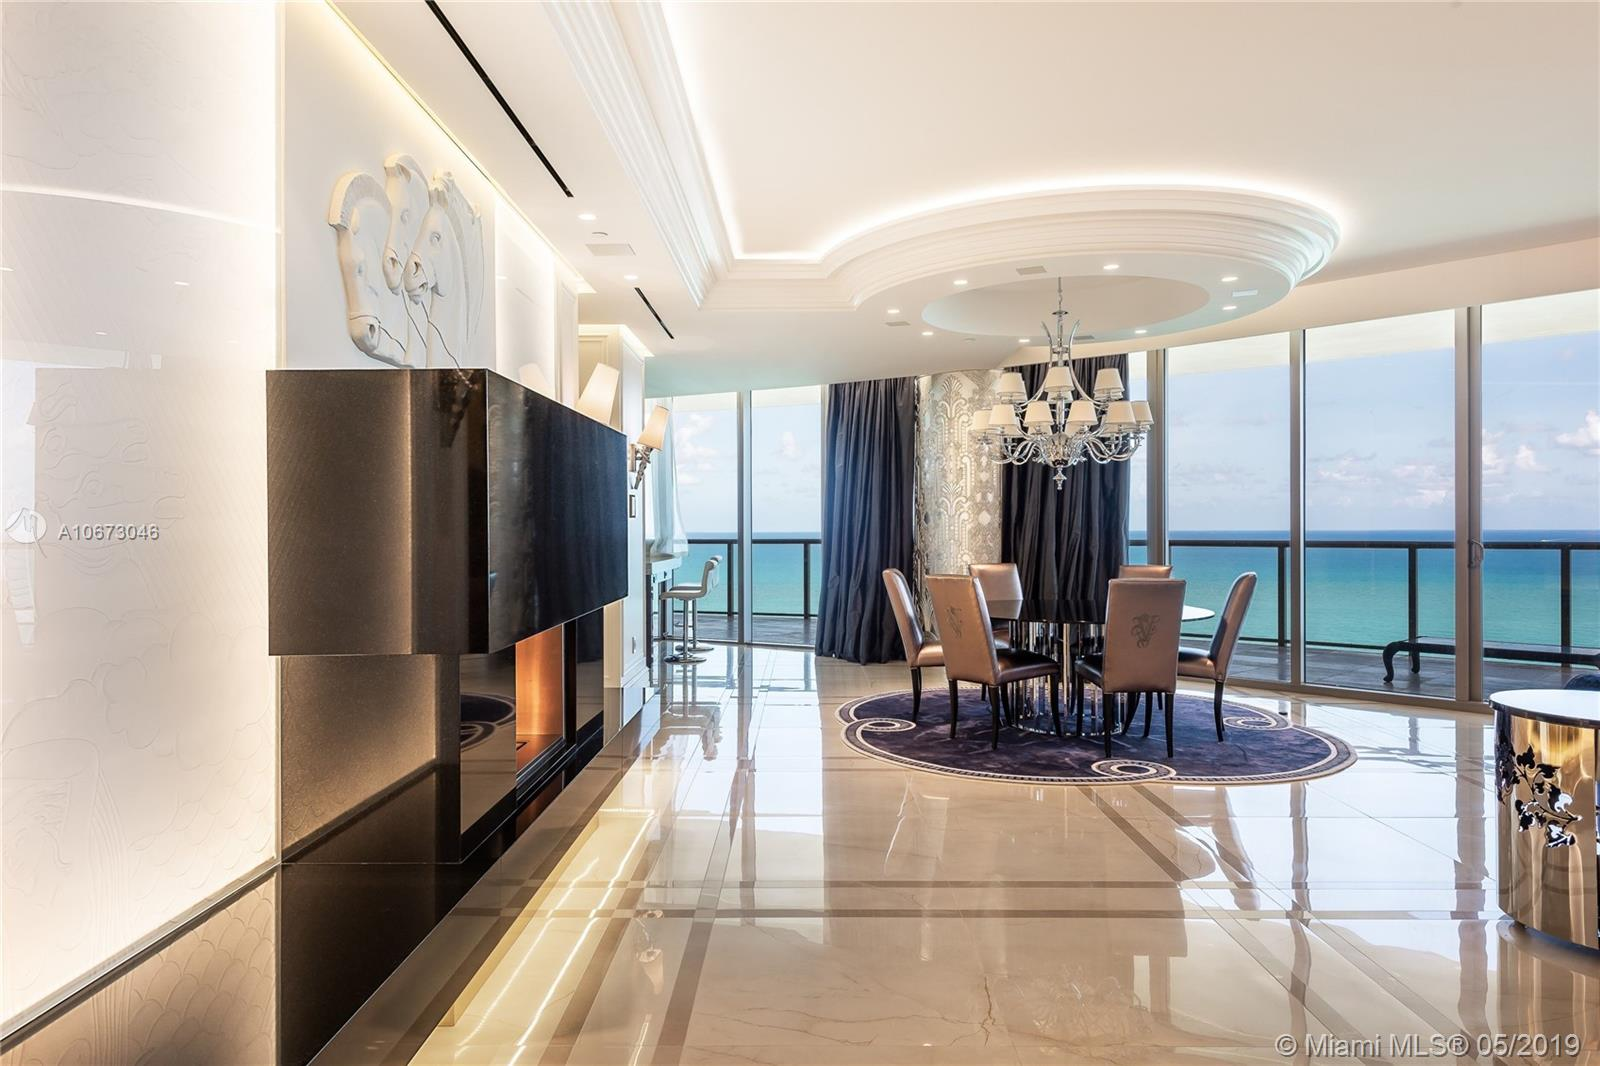 9703 Collins Ave #2600 Property Photo - Bal Harbour, FL real estate listing